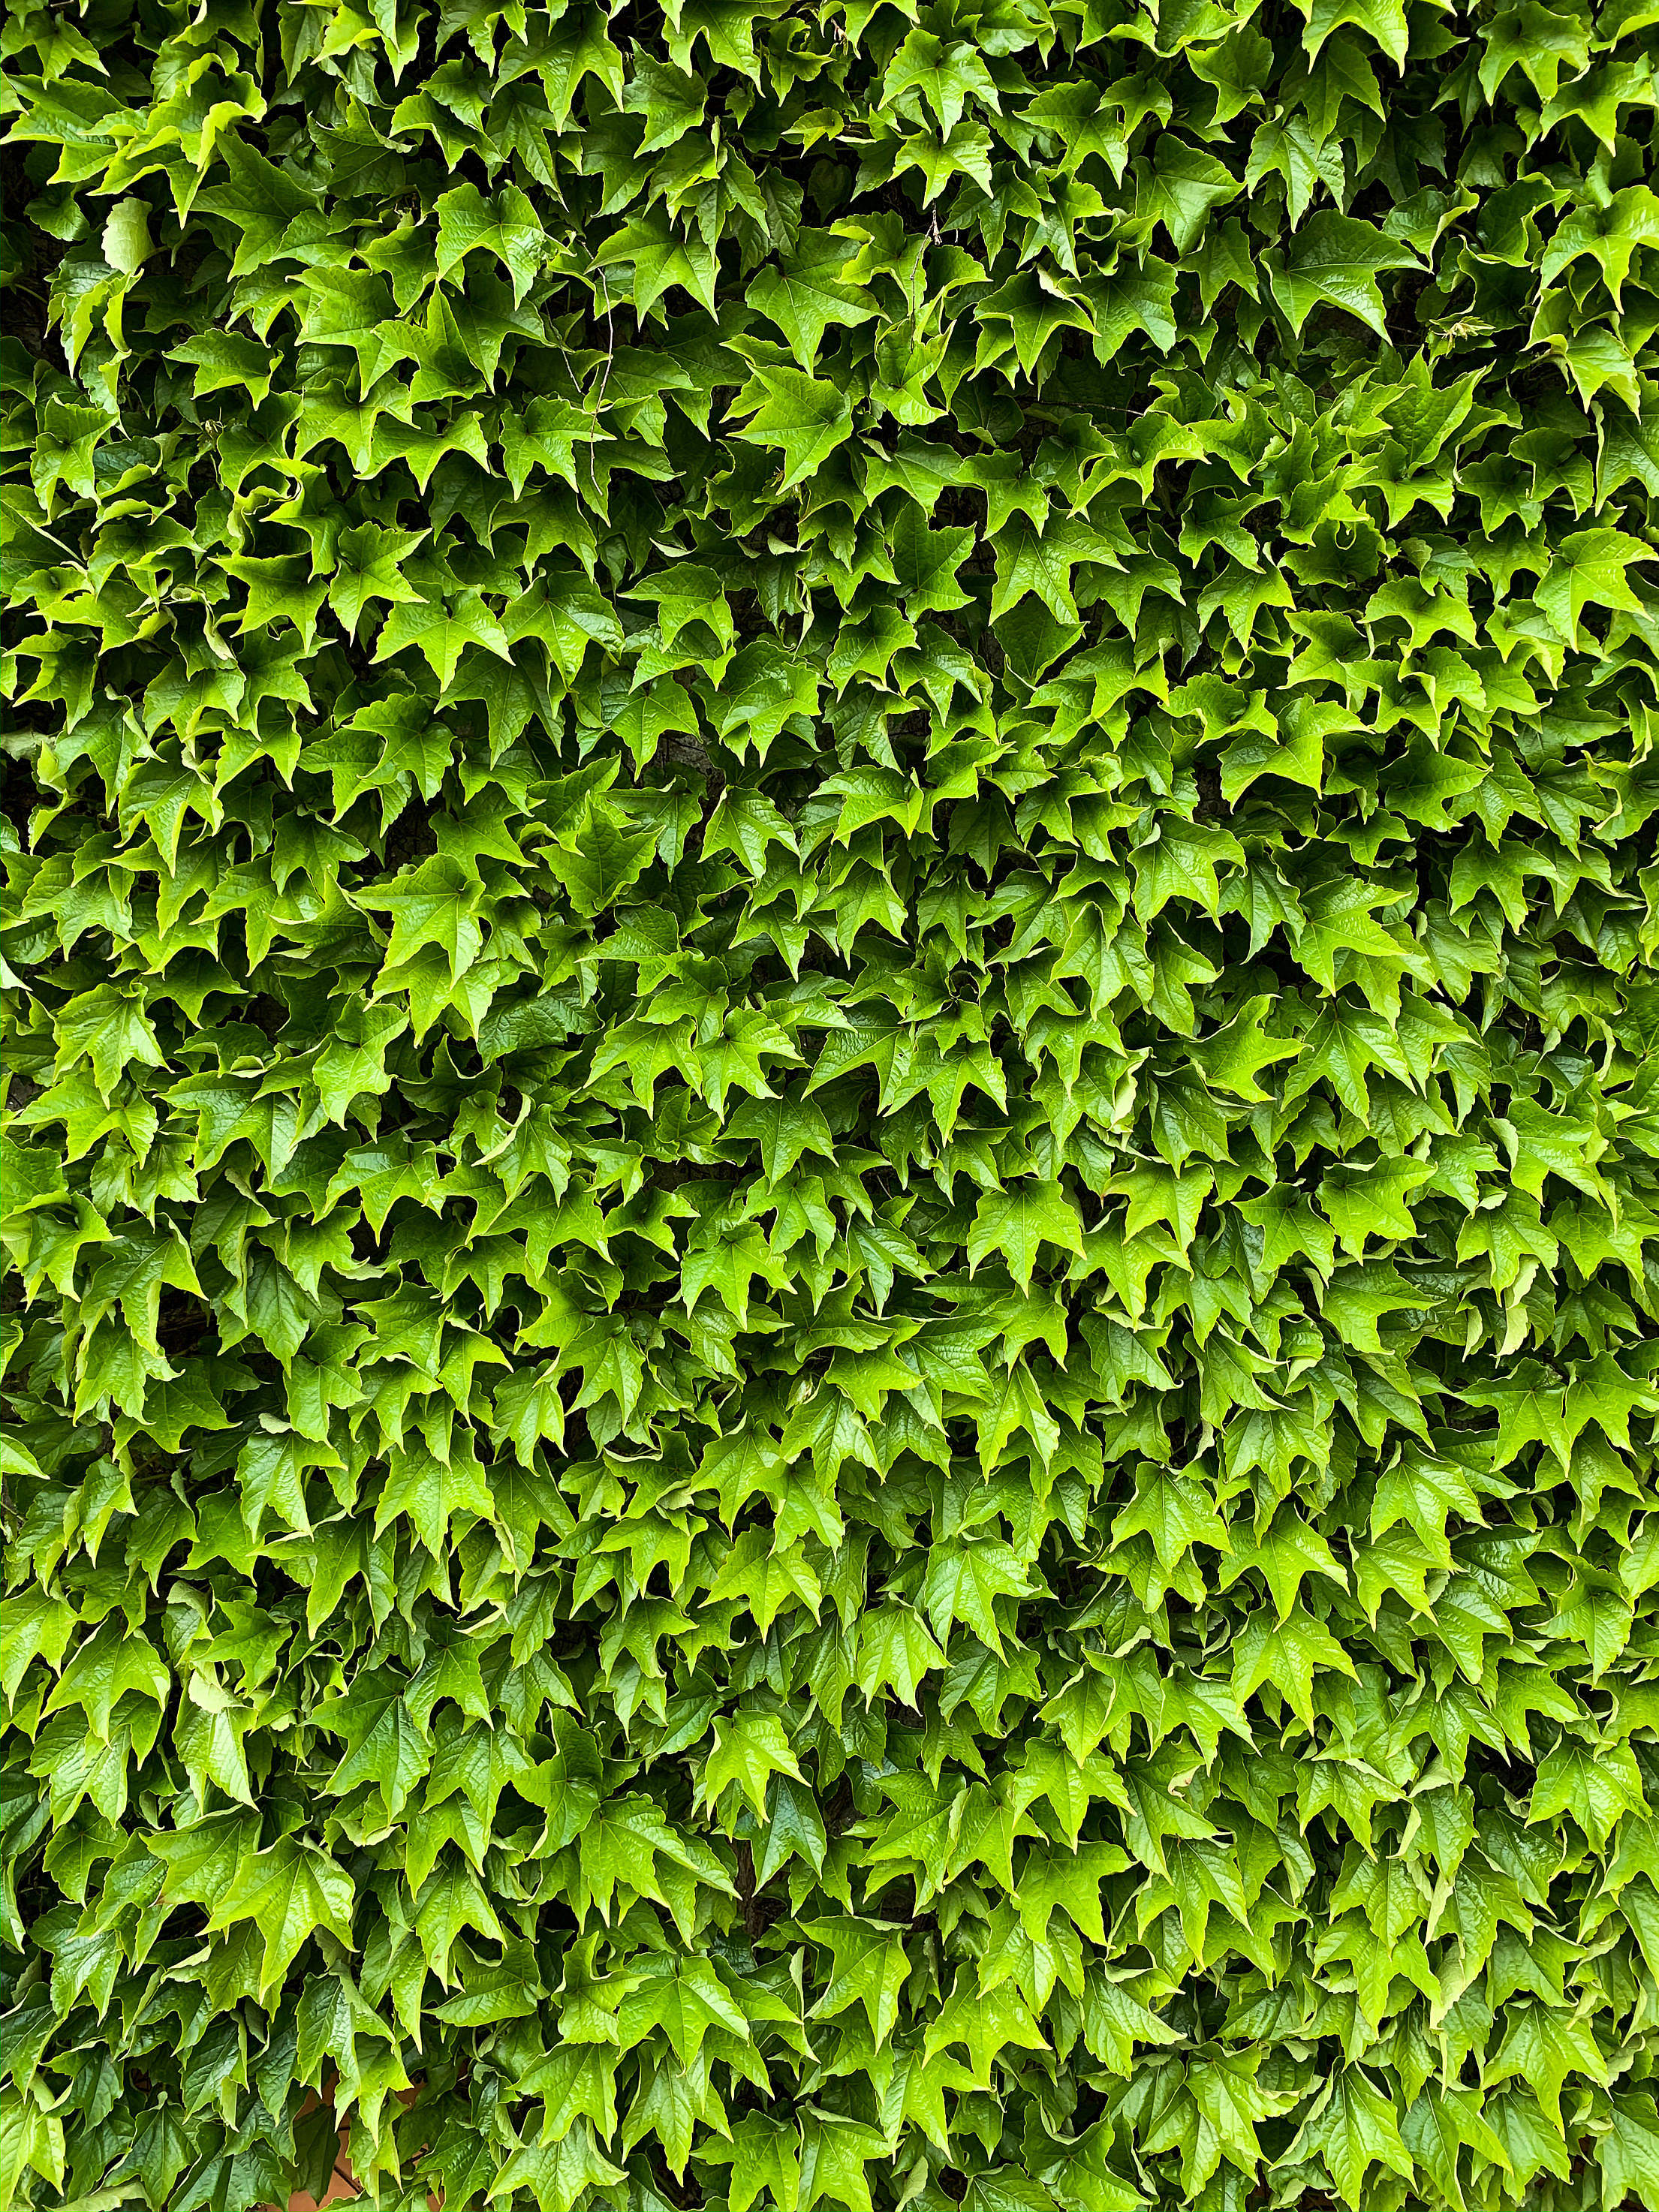 Green Ivy Texture Vertical Free Stock Photo